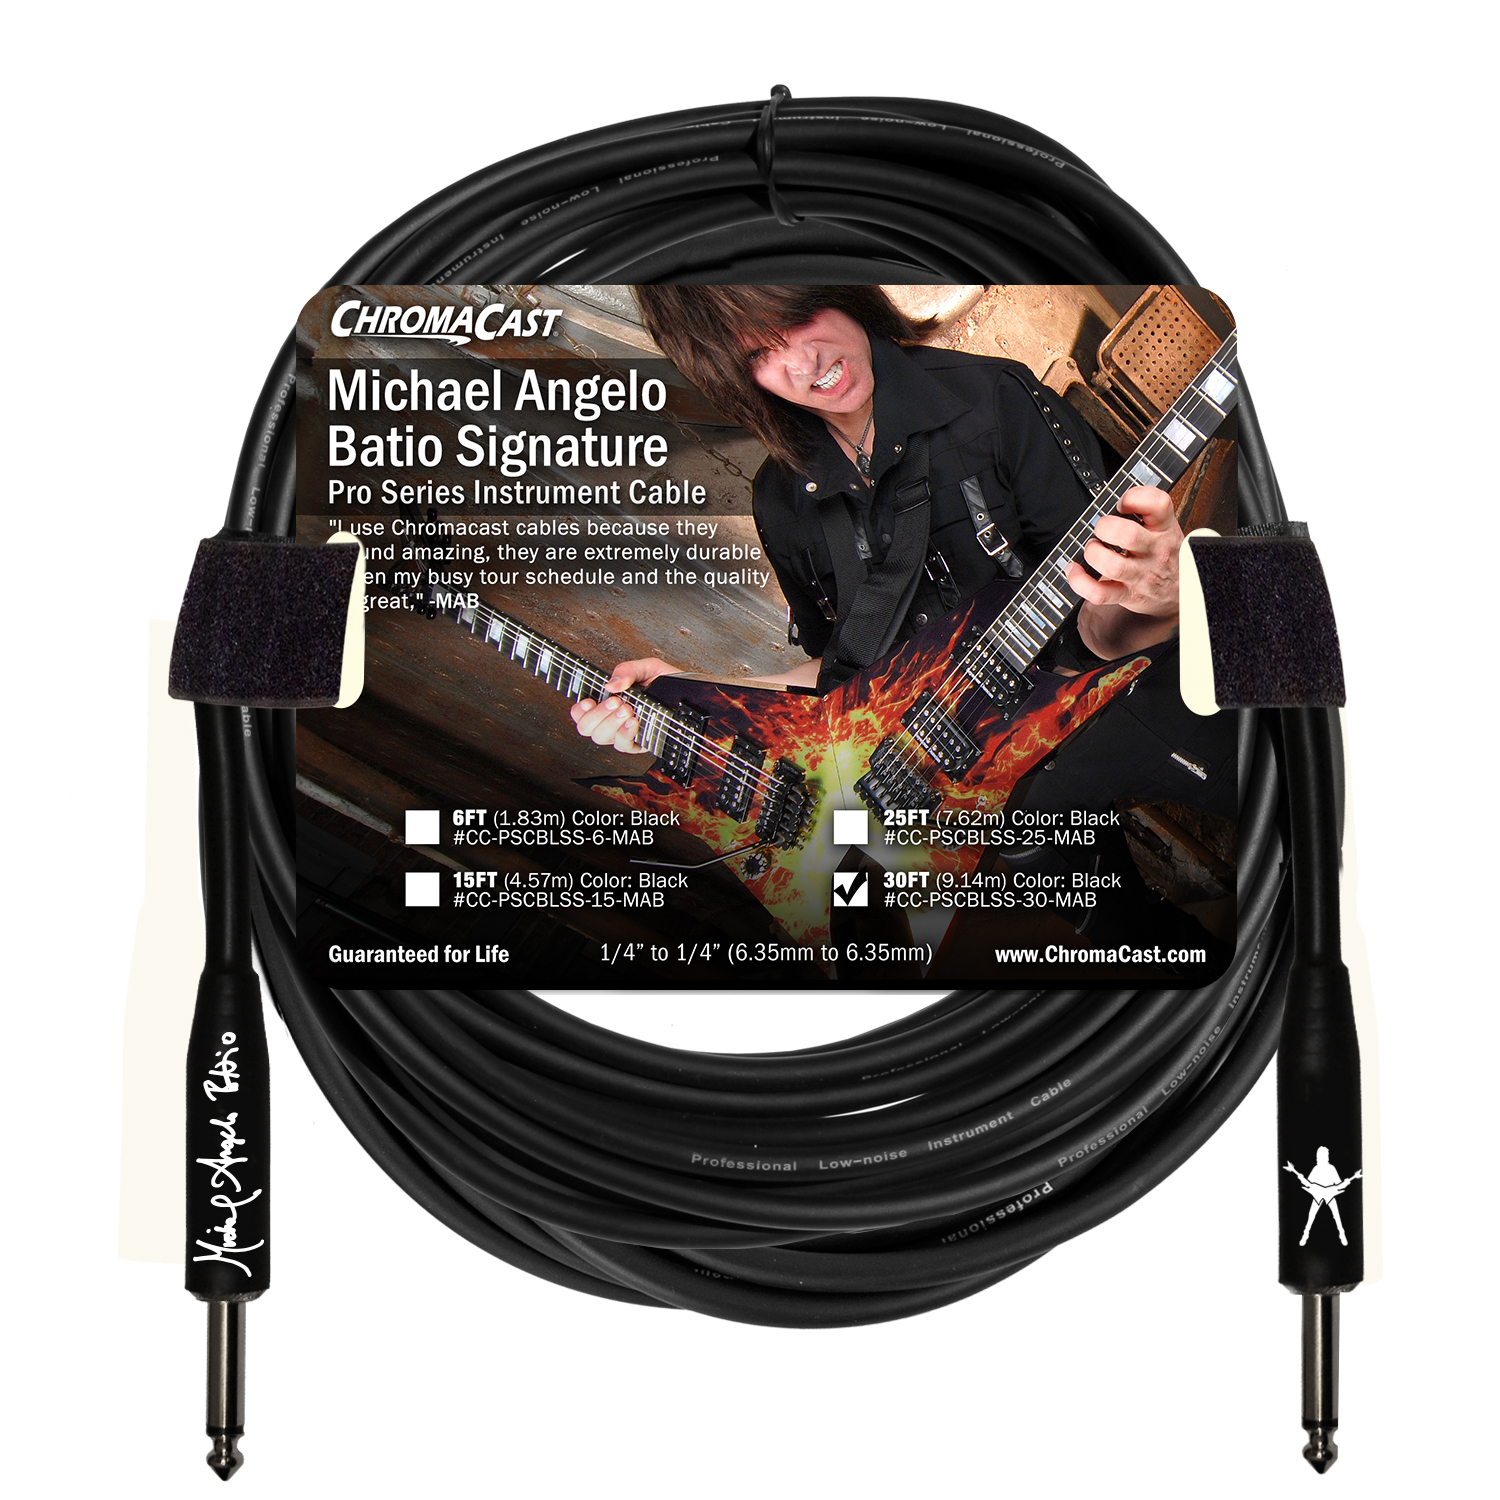 MAB Signature 30' Pro Series Cable